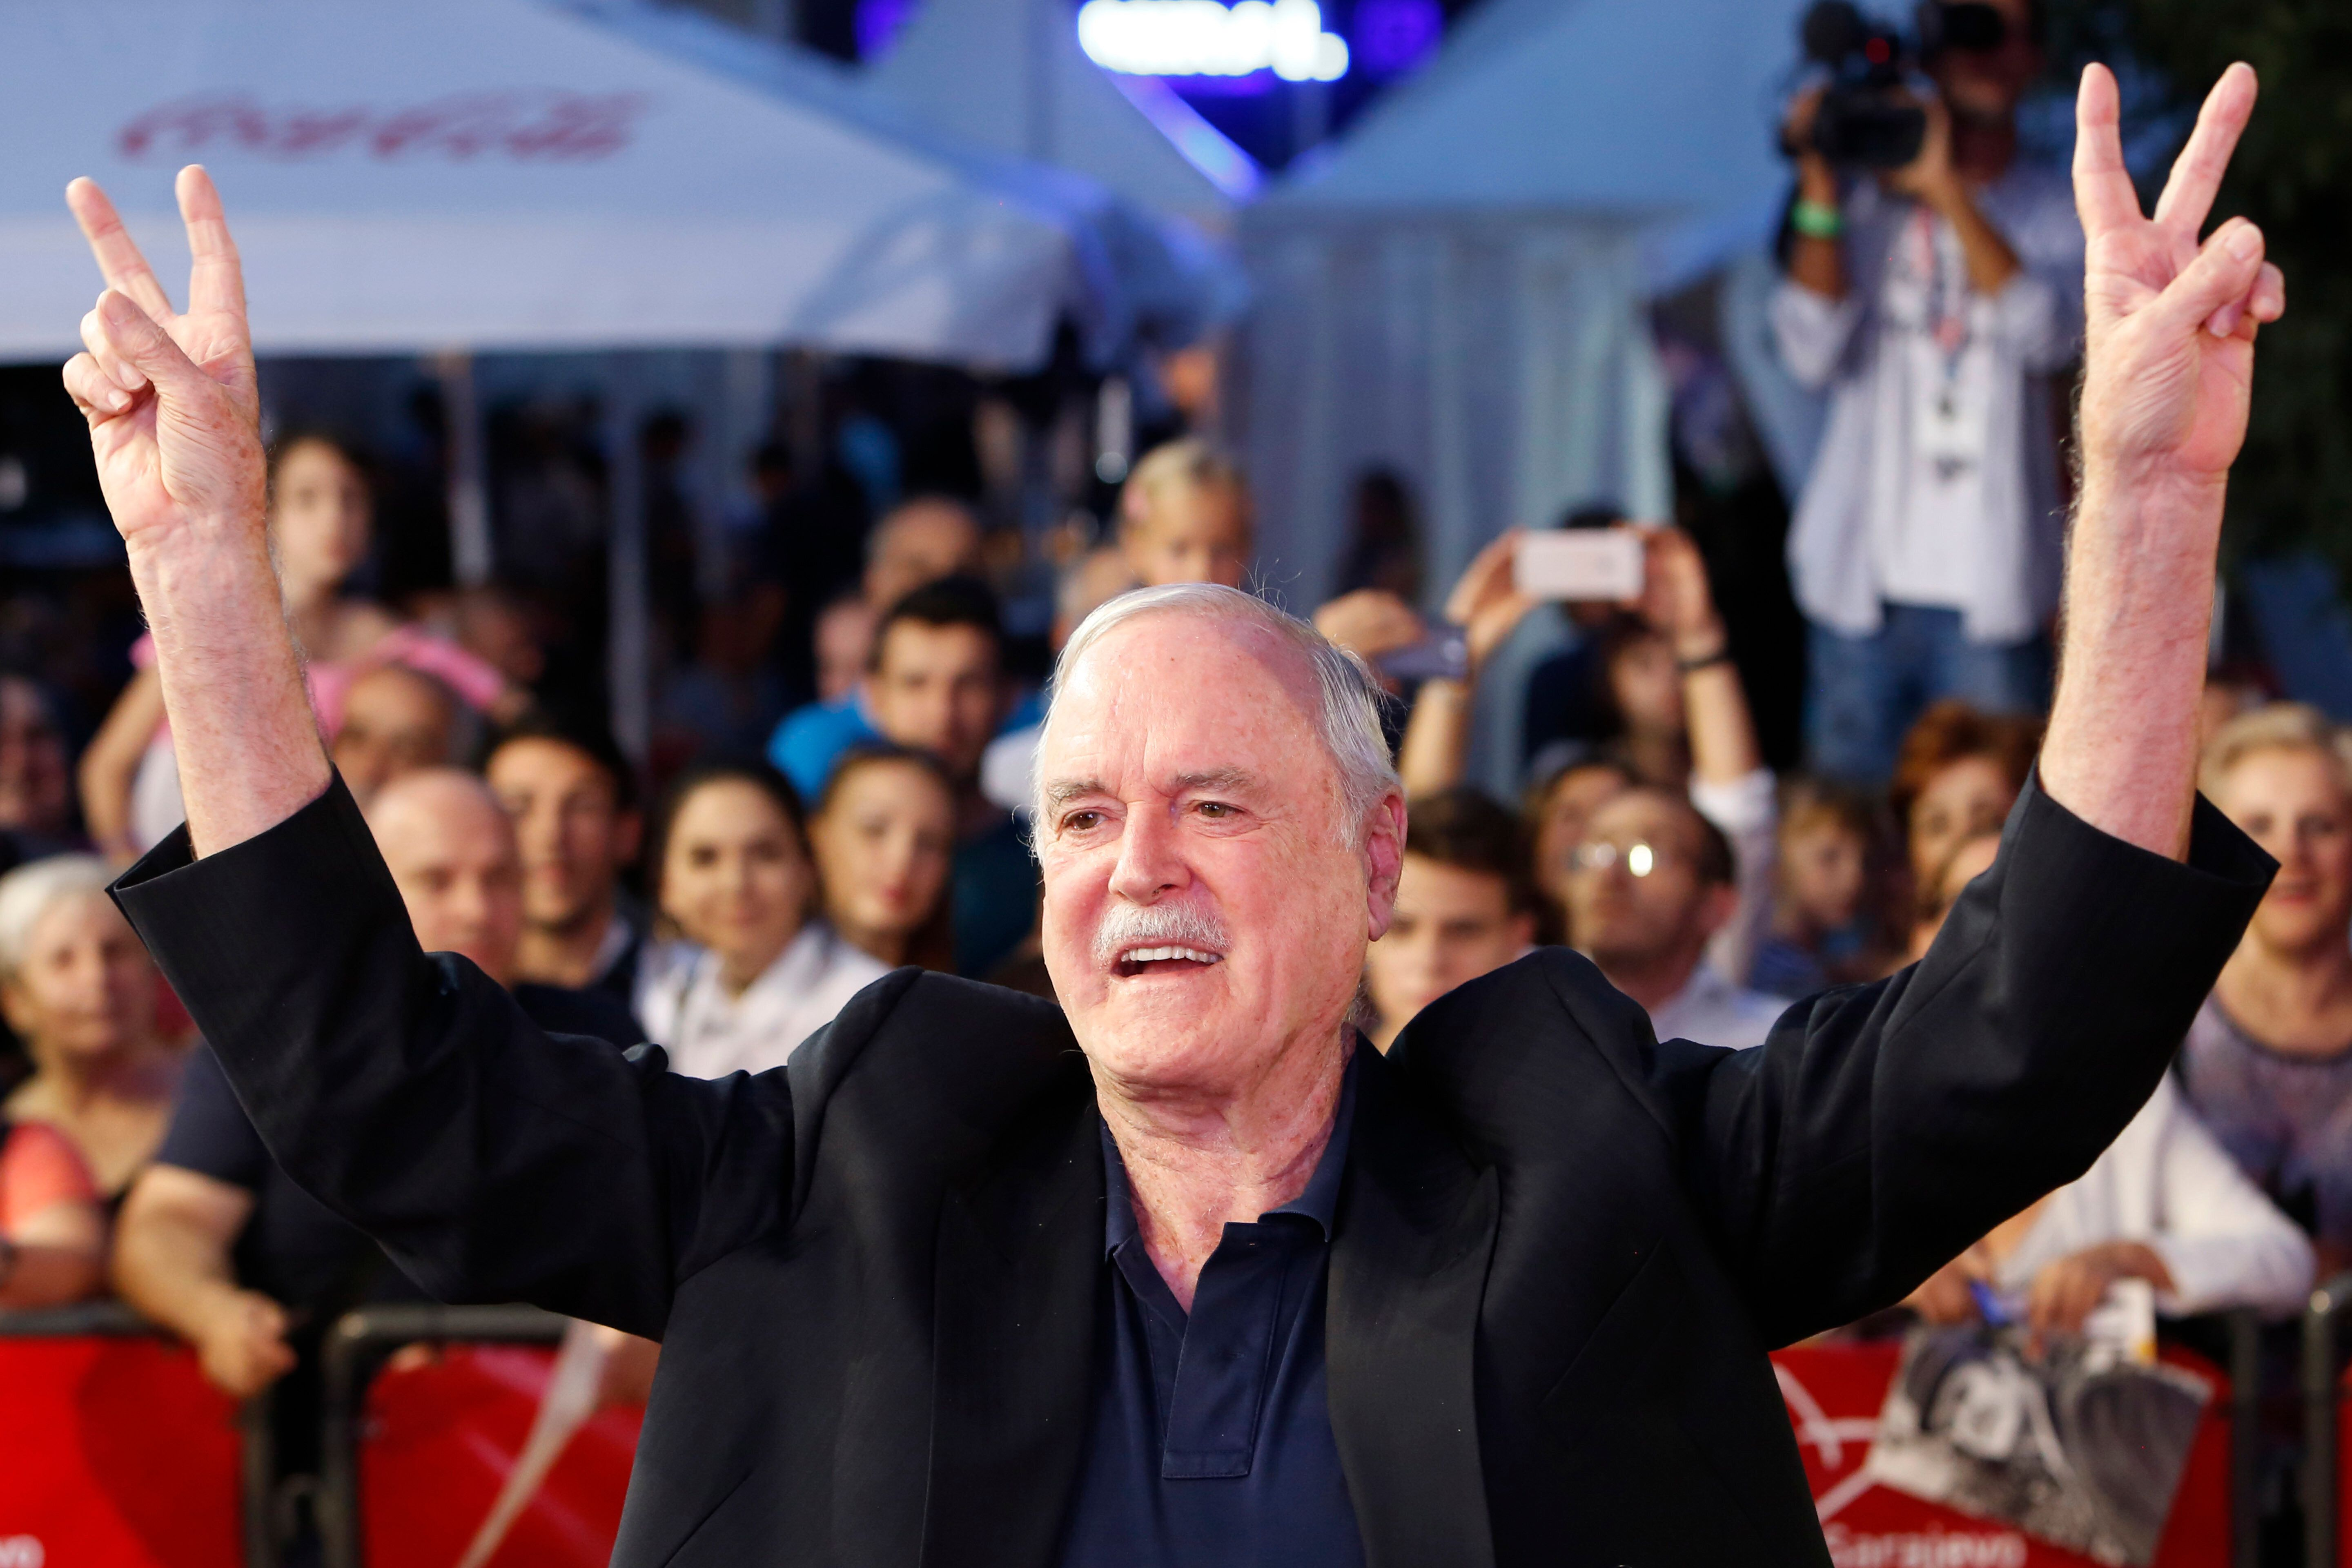 English actor John Cleese poses for photos as he walks on the red carpet to receive Sarajevo Film Festival's top honour award, the Heart of Sarajevo Award, in Sarajevo, Bosnia, on Wednesday, Aug. 16, 2017. (AP Photo/Amel Emric)